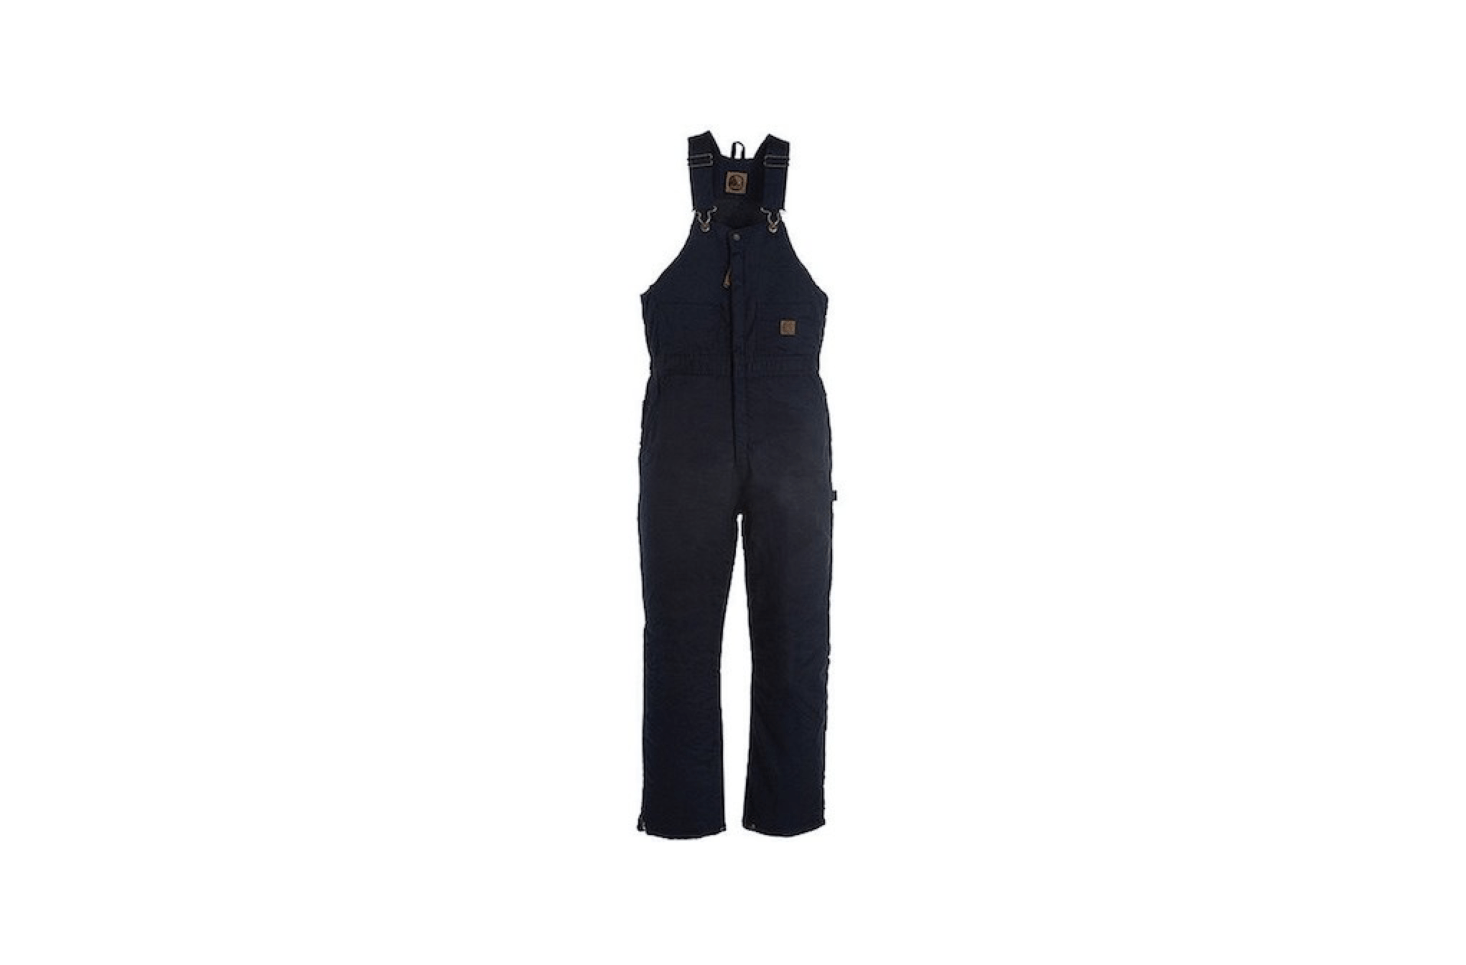 """From Berne, a pair of Deluxe Insulated Bib Overall-Zip To Kneecoveralls has an insulated """"High Back"""" design for added warmth; $56.95 from All Seasons Uniform."""